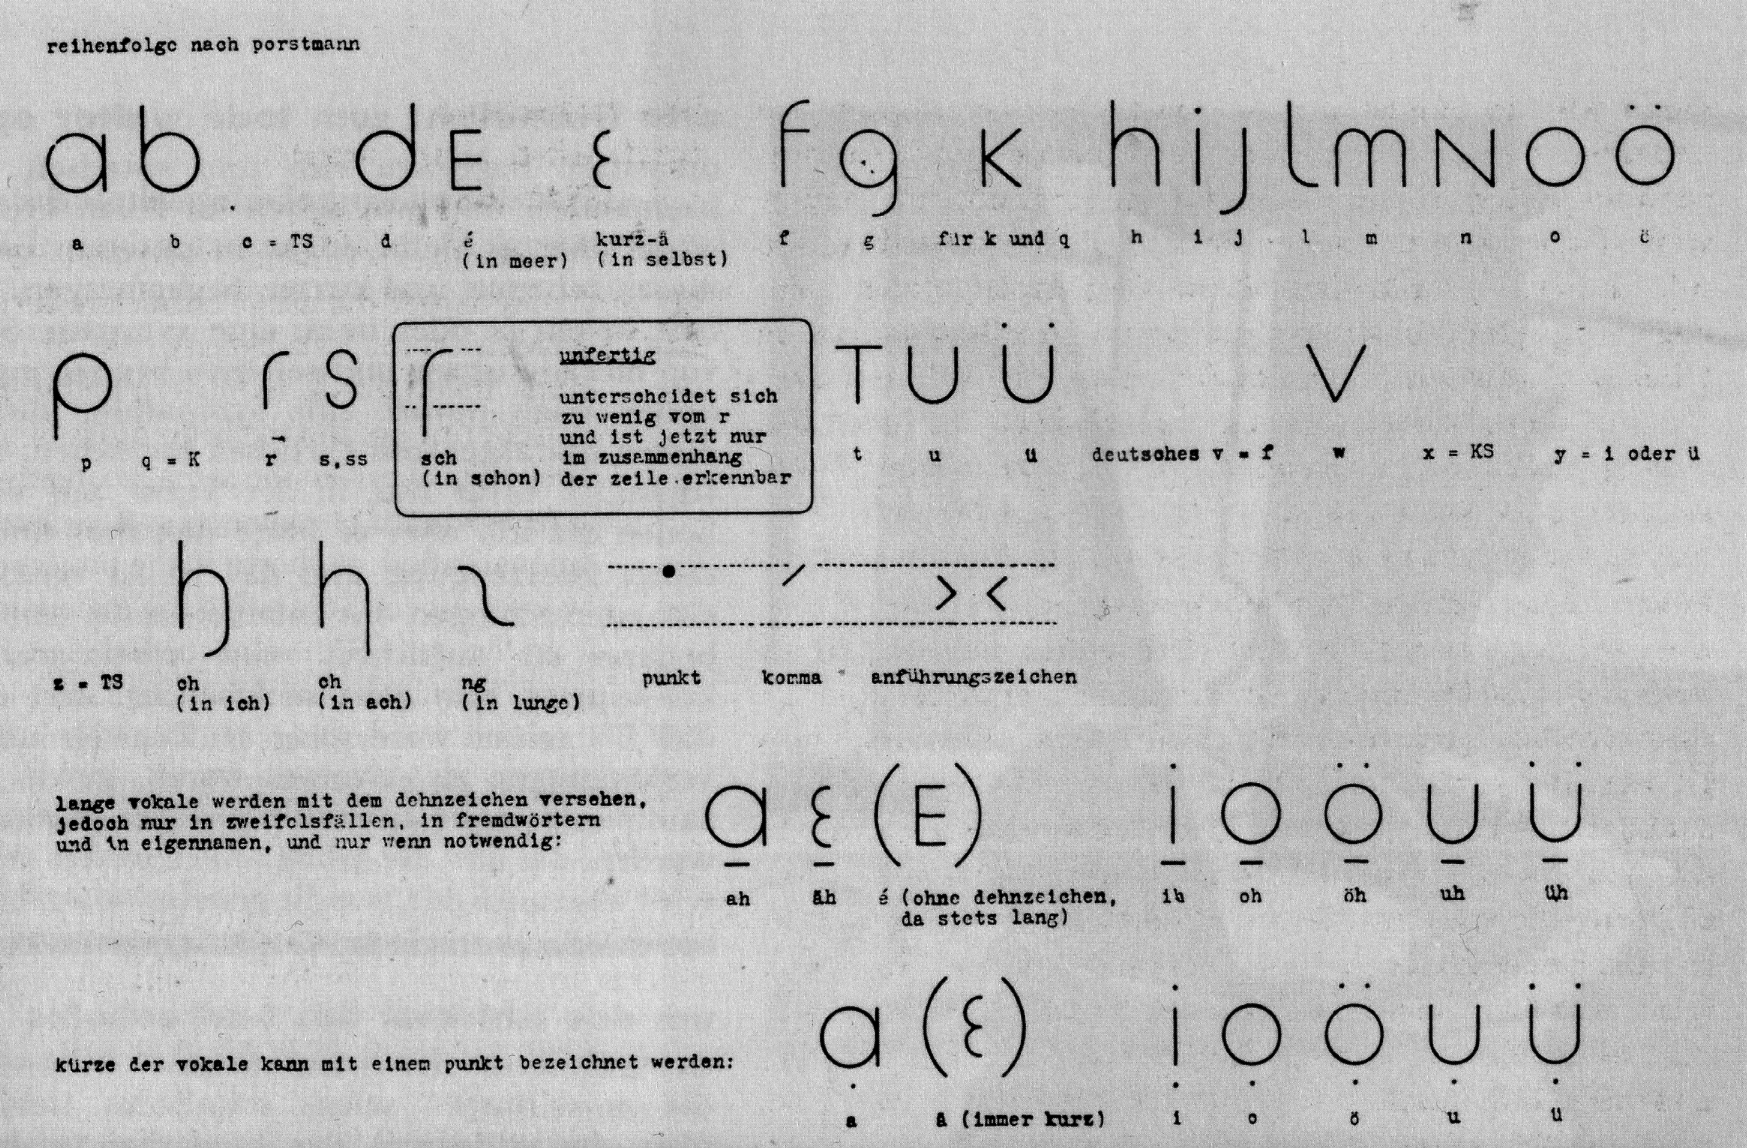 Jan Tschichold's new alphabet following Walter Porstmann's proposals, published in A bis Z, no. 7 (1930)